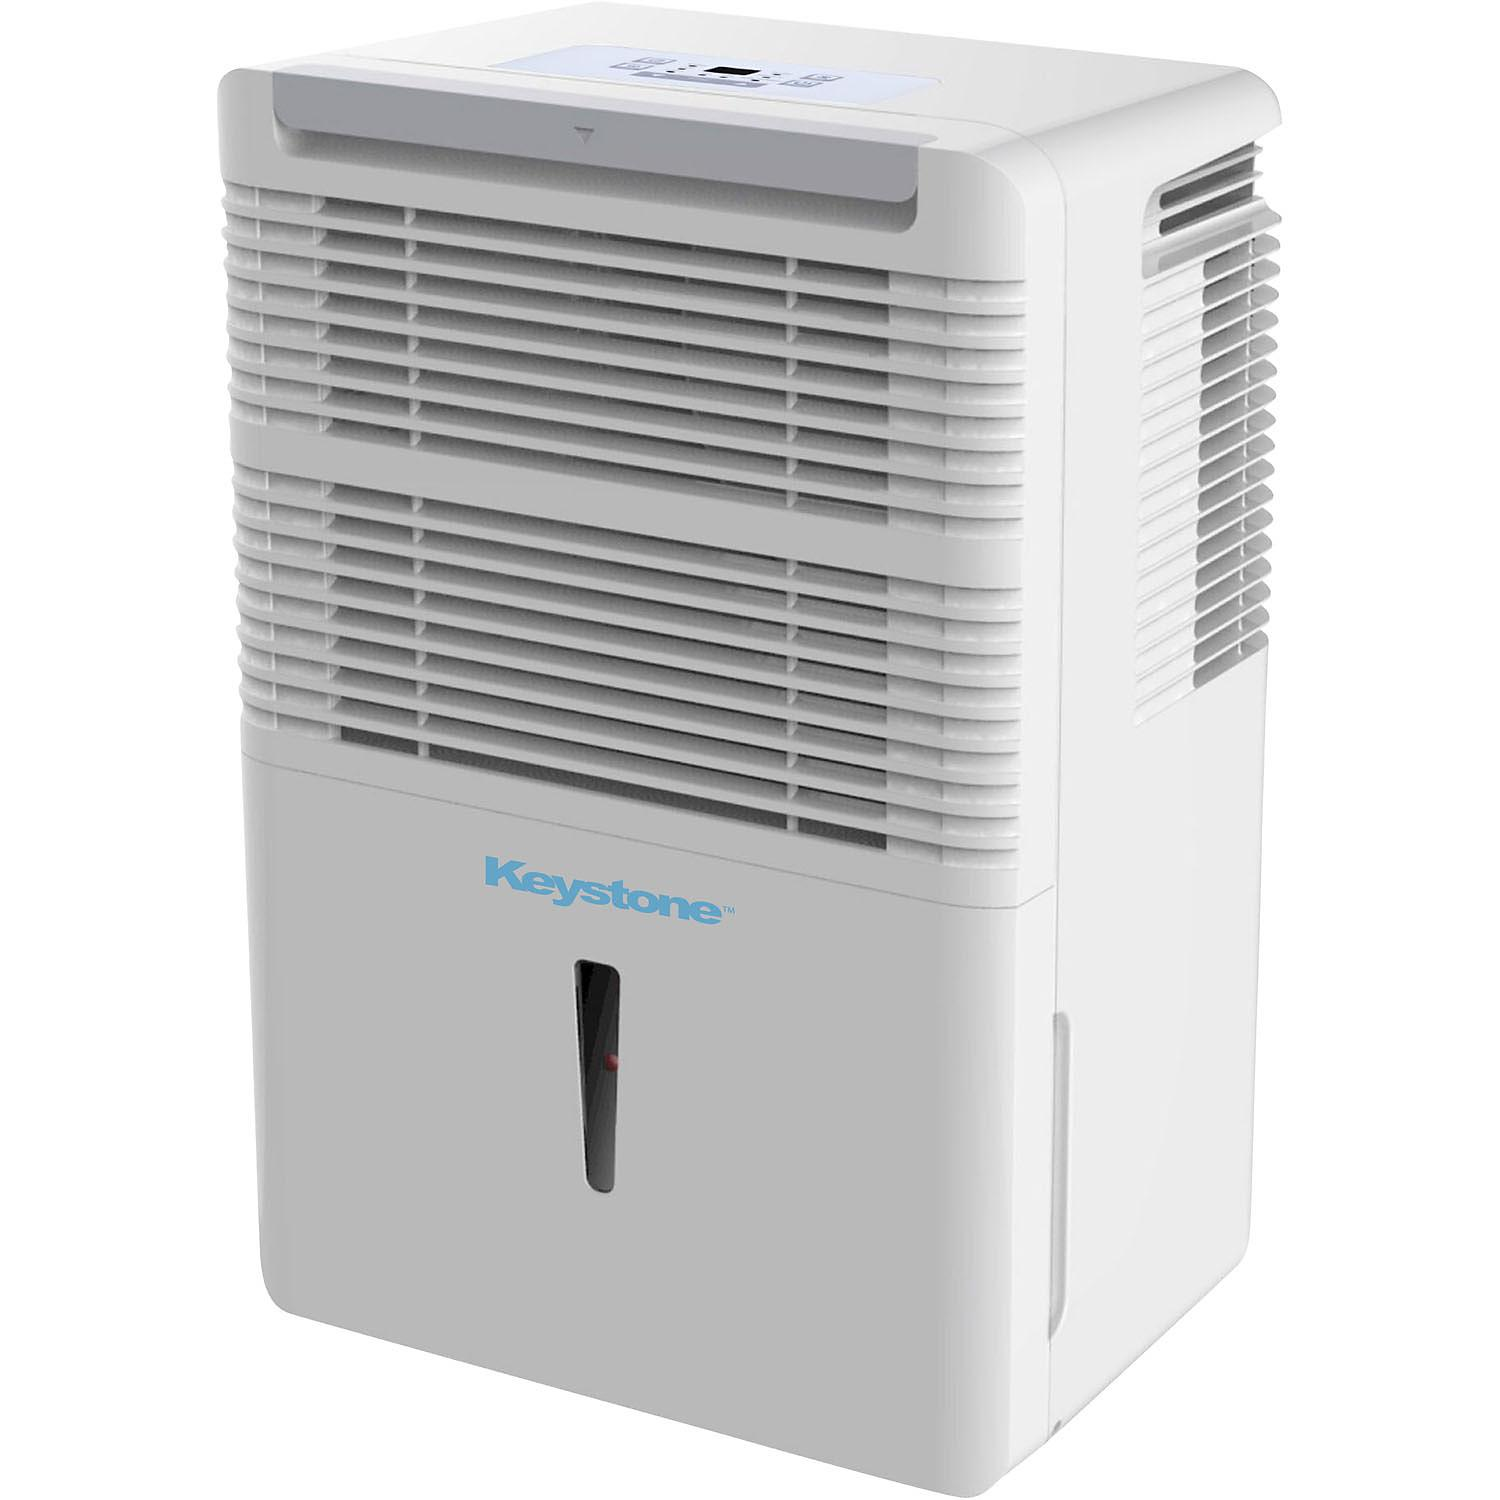 Why You Should Consider Buying a Dehumidifier